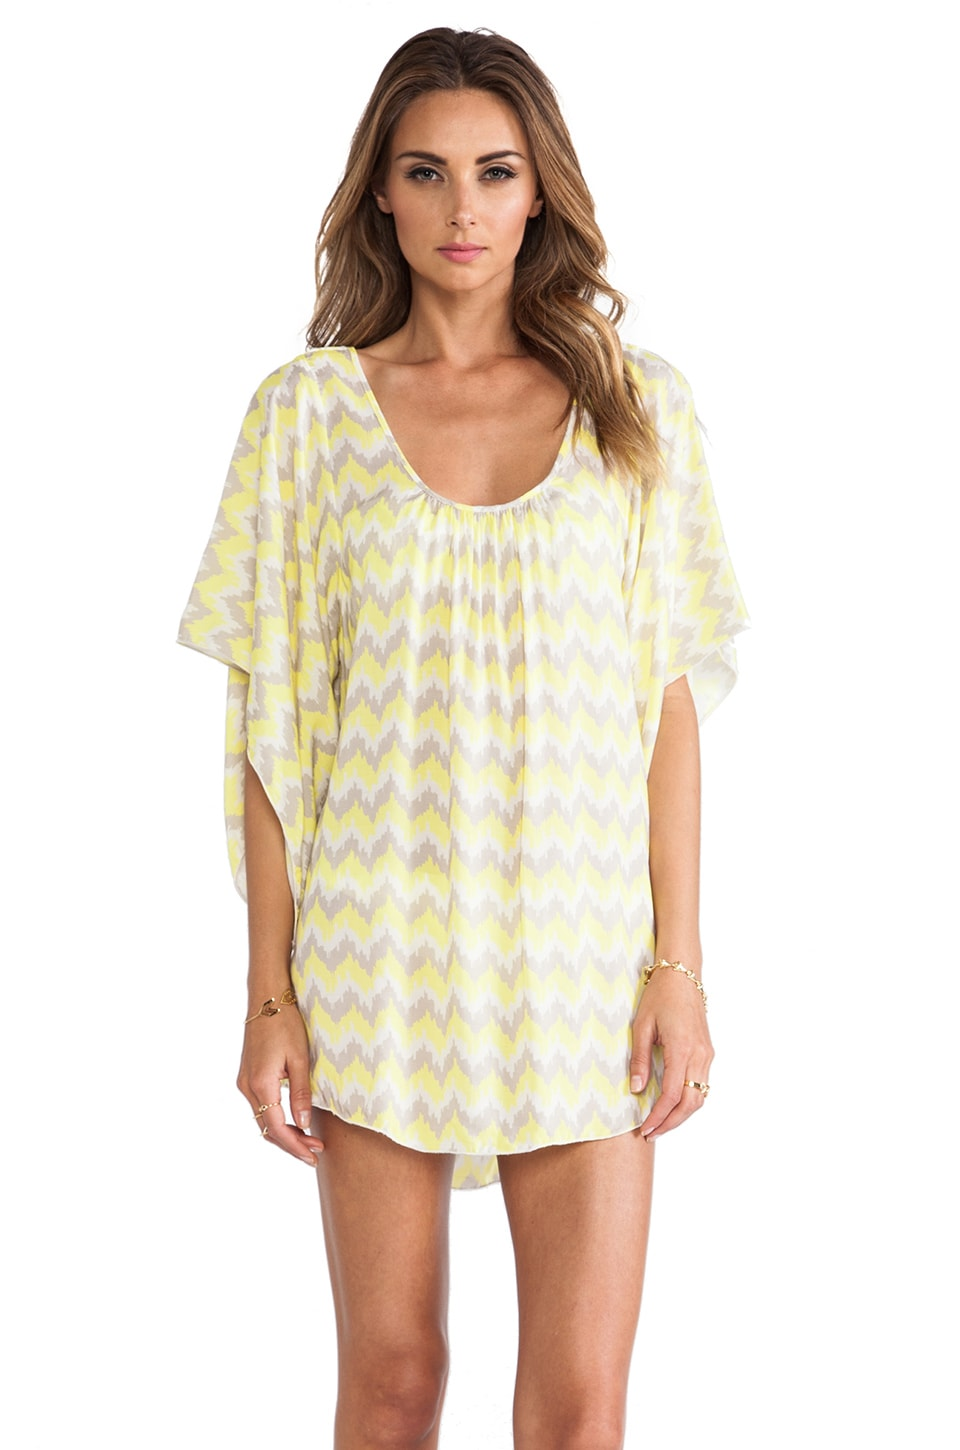 eberjey Clara Coverup Dress in Citrus & Jute